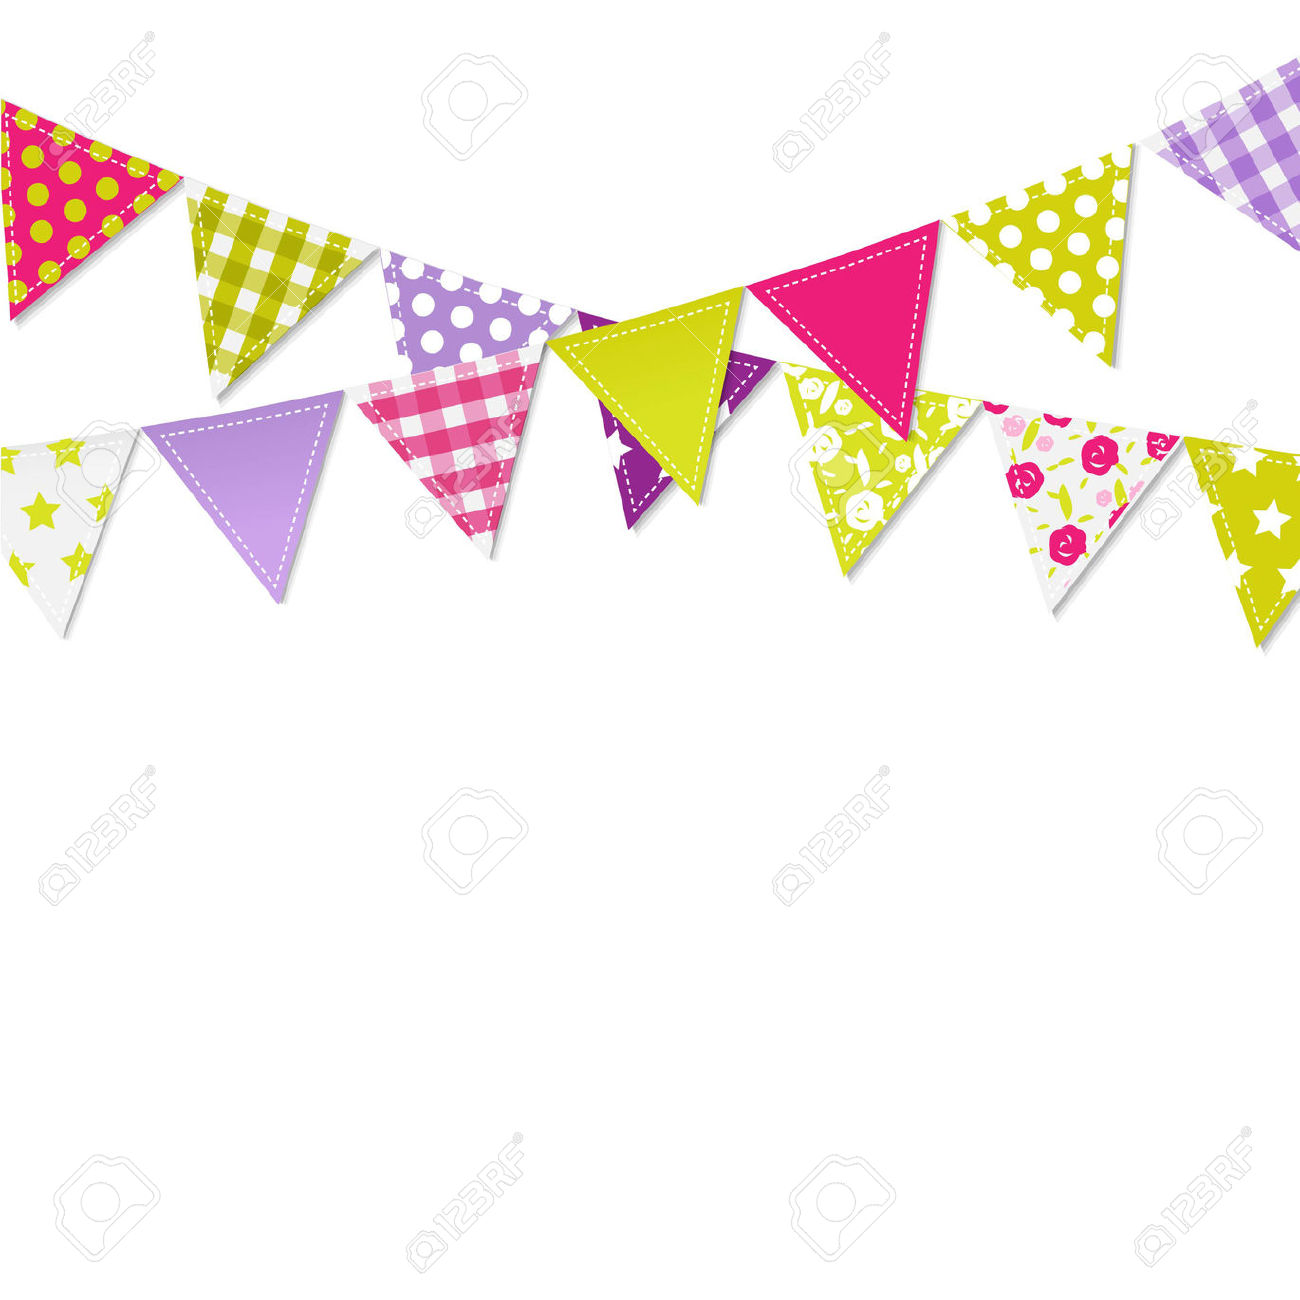 Bunting clipart #13, Download drawings